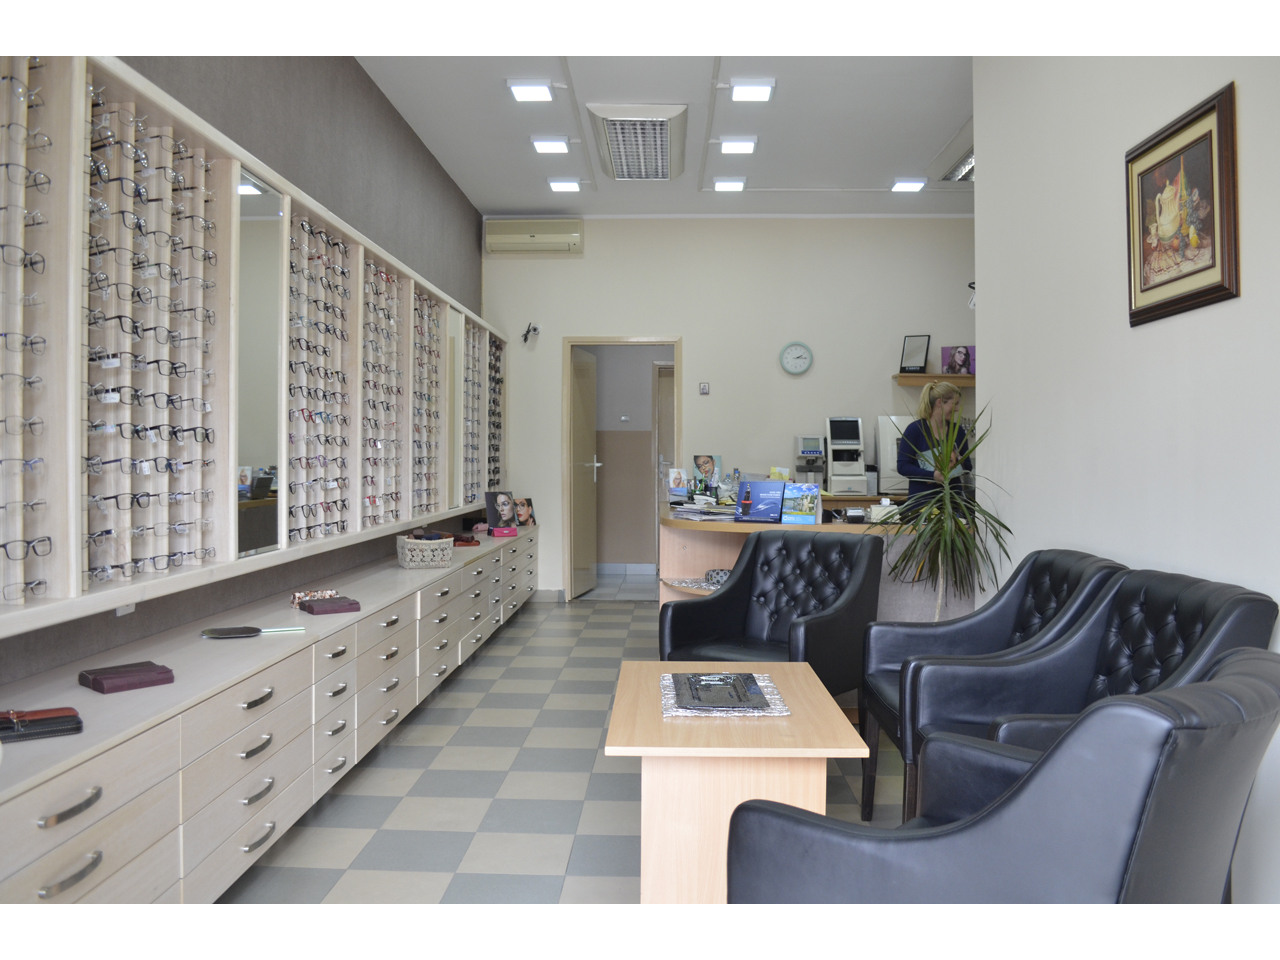 OPTIC VINOPTIC Optics Beograd